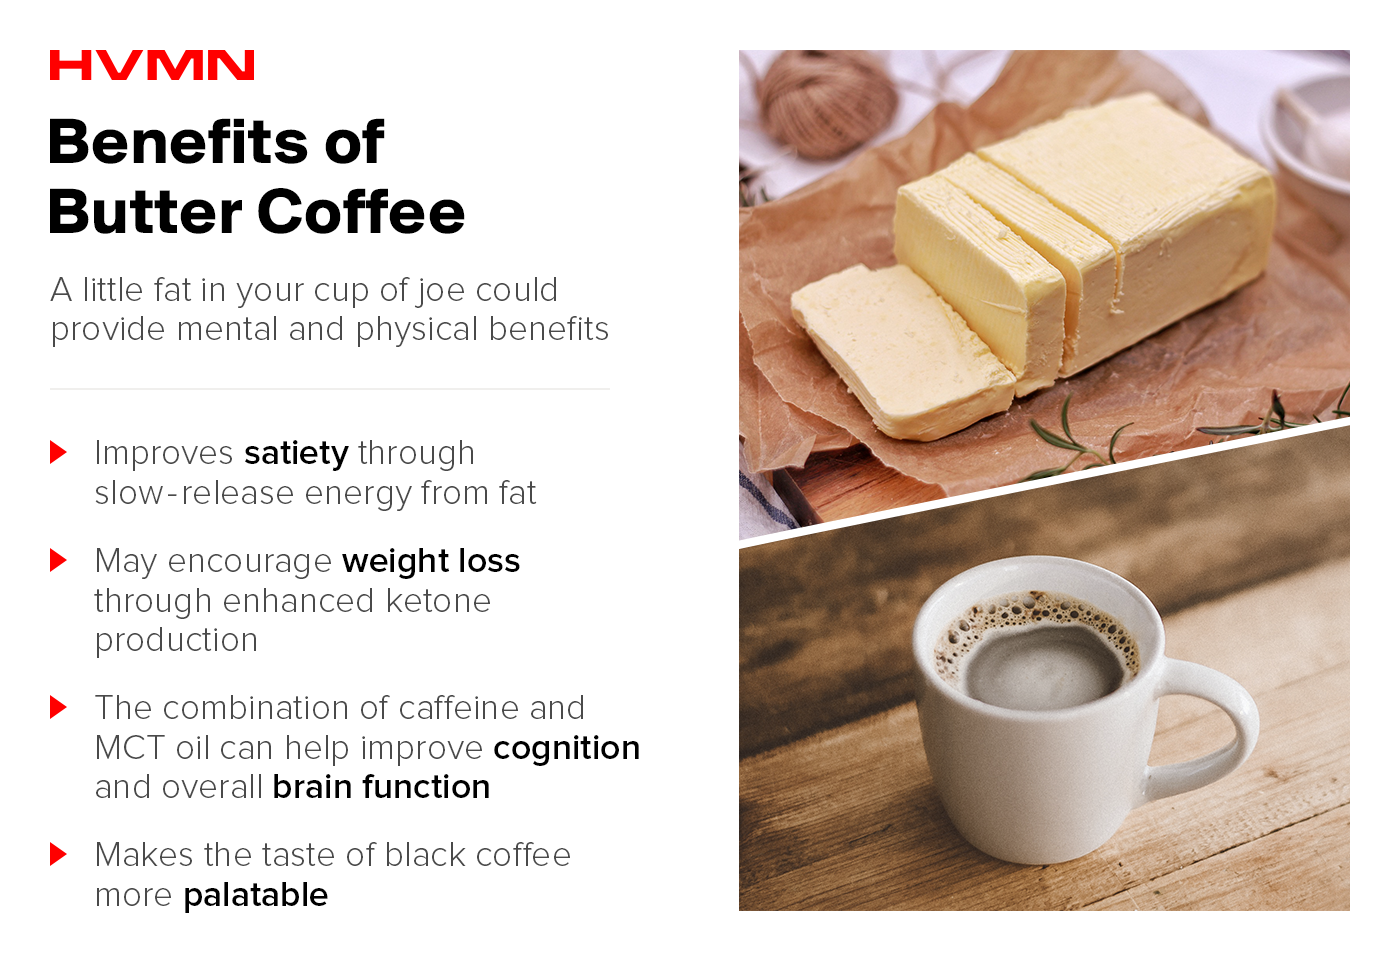 An image of a slab of butter next to a creamy cup of butter coffee, showing all the benefits of butter coffee